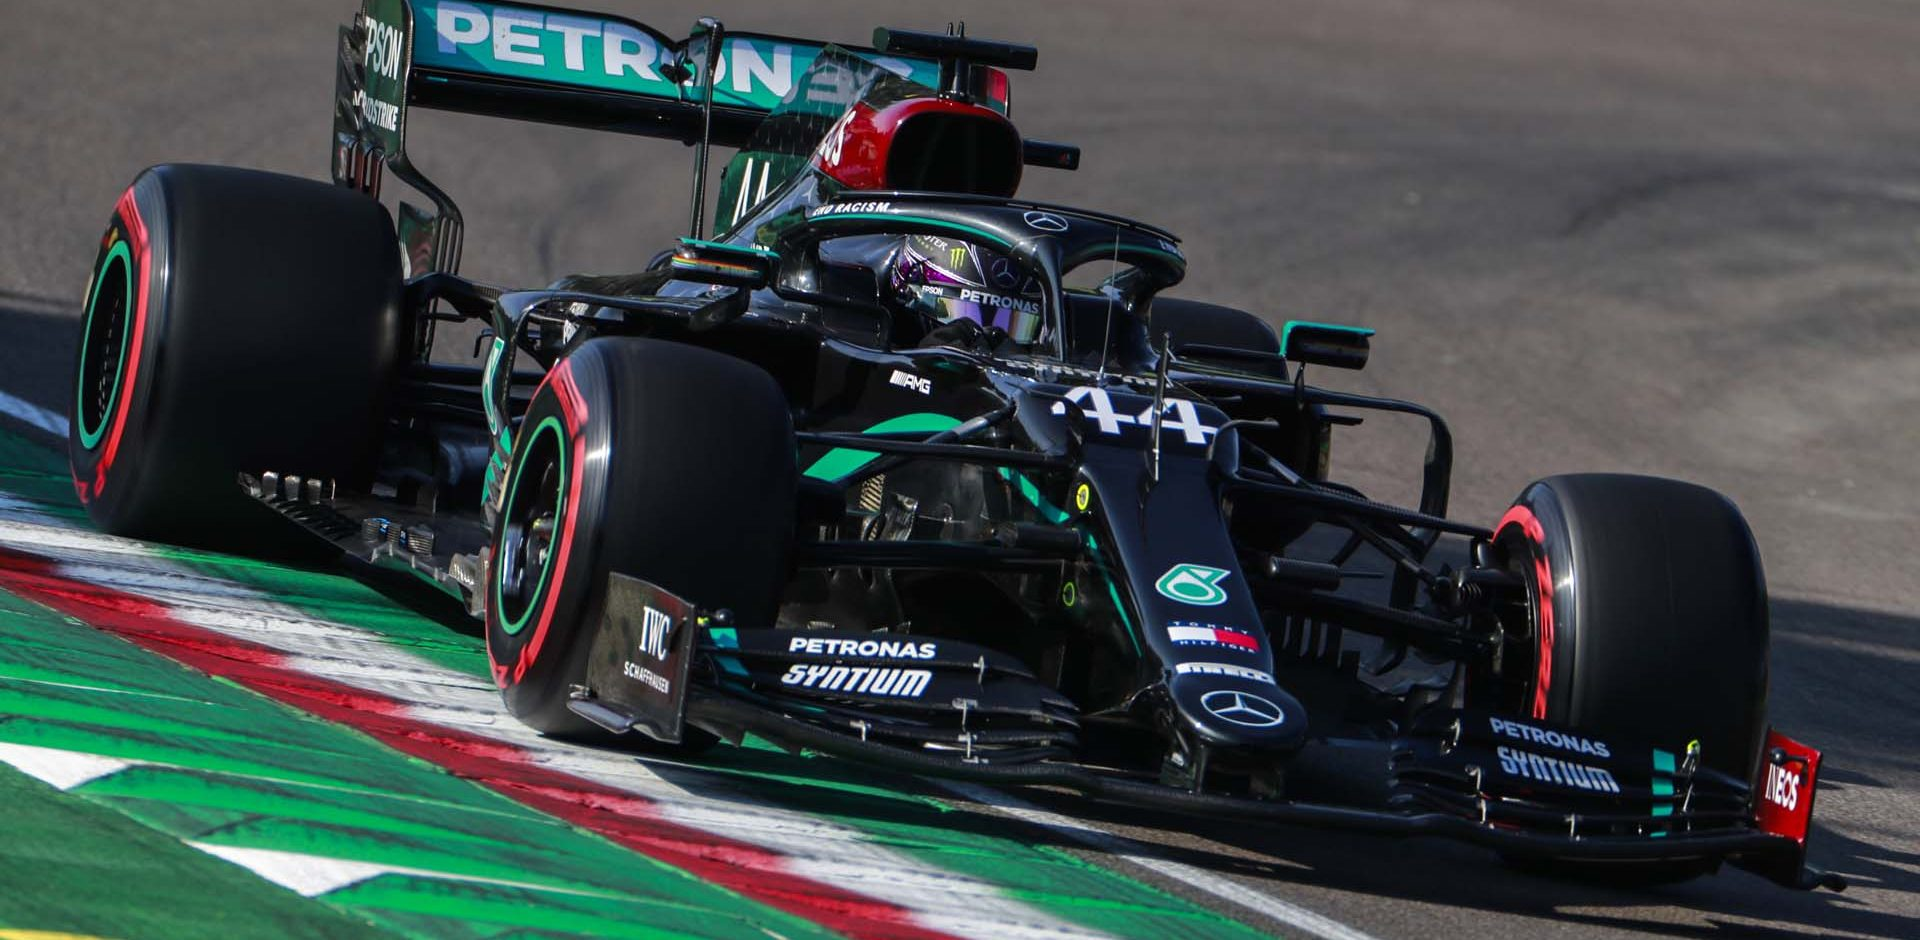 IMOLA, ITALY - OCTOBER 31: Lewis Hamilton, Mercedes F1 W11 EQ Performance during the Emilia-Romagna GP at Imola on Saturday October 31, 2020, Italy. (Photo by Steven Tee / LAT Images)